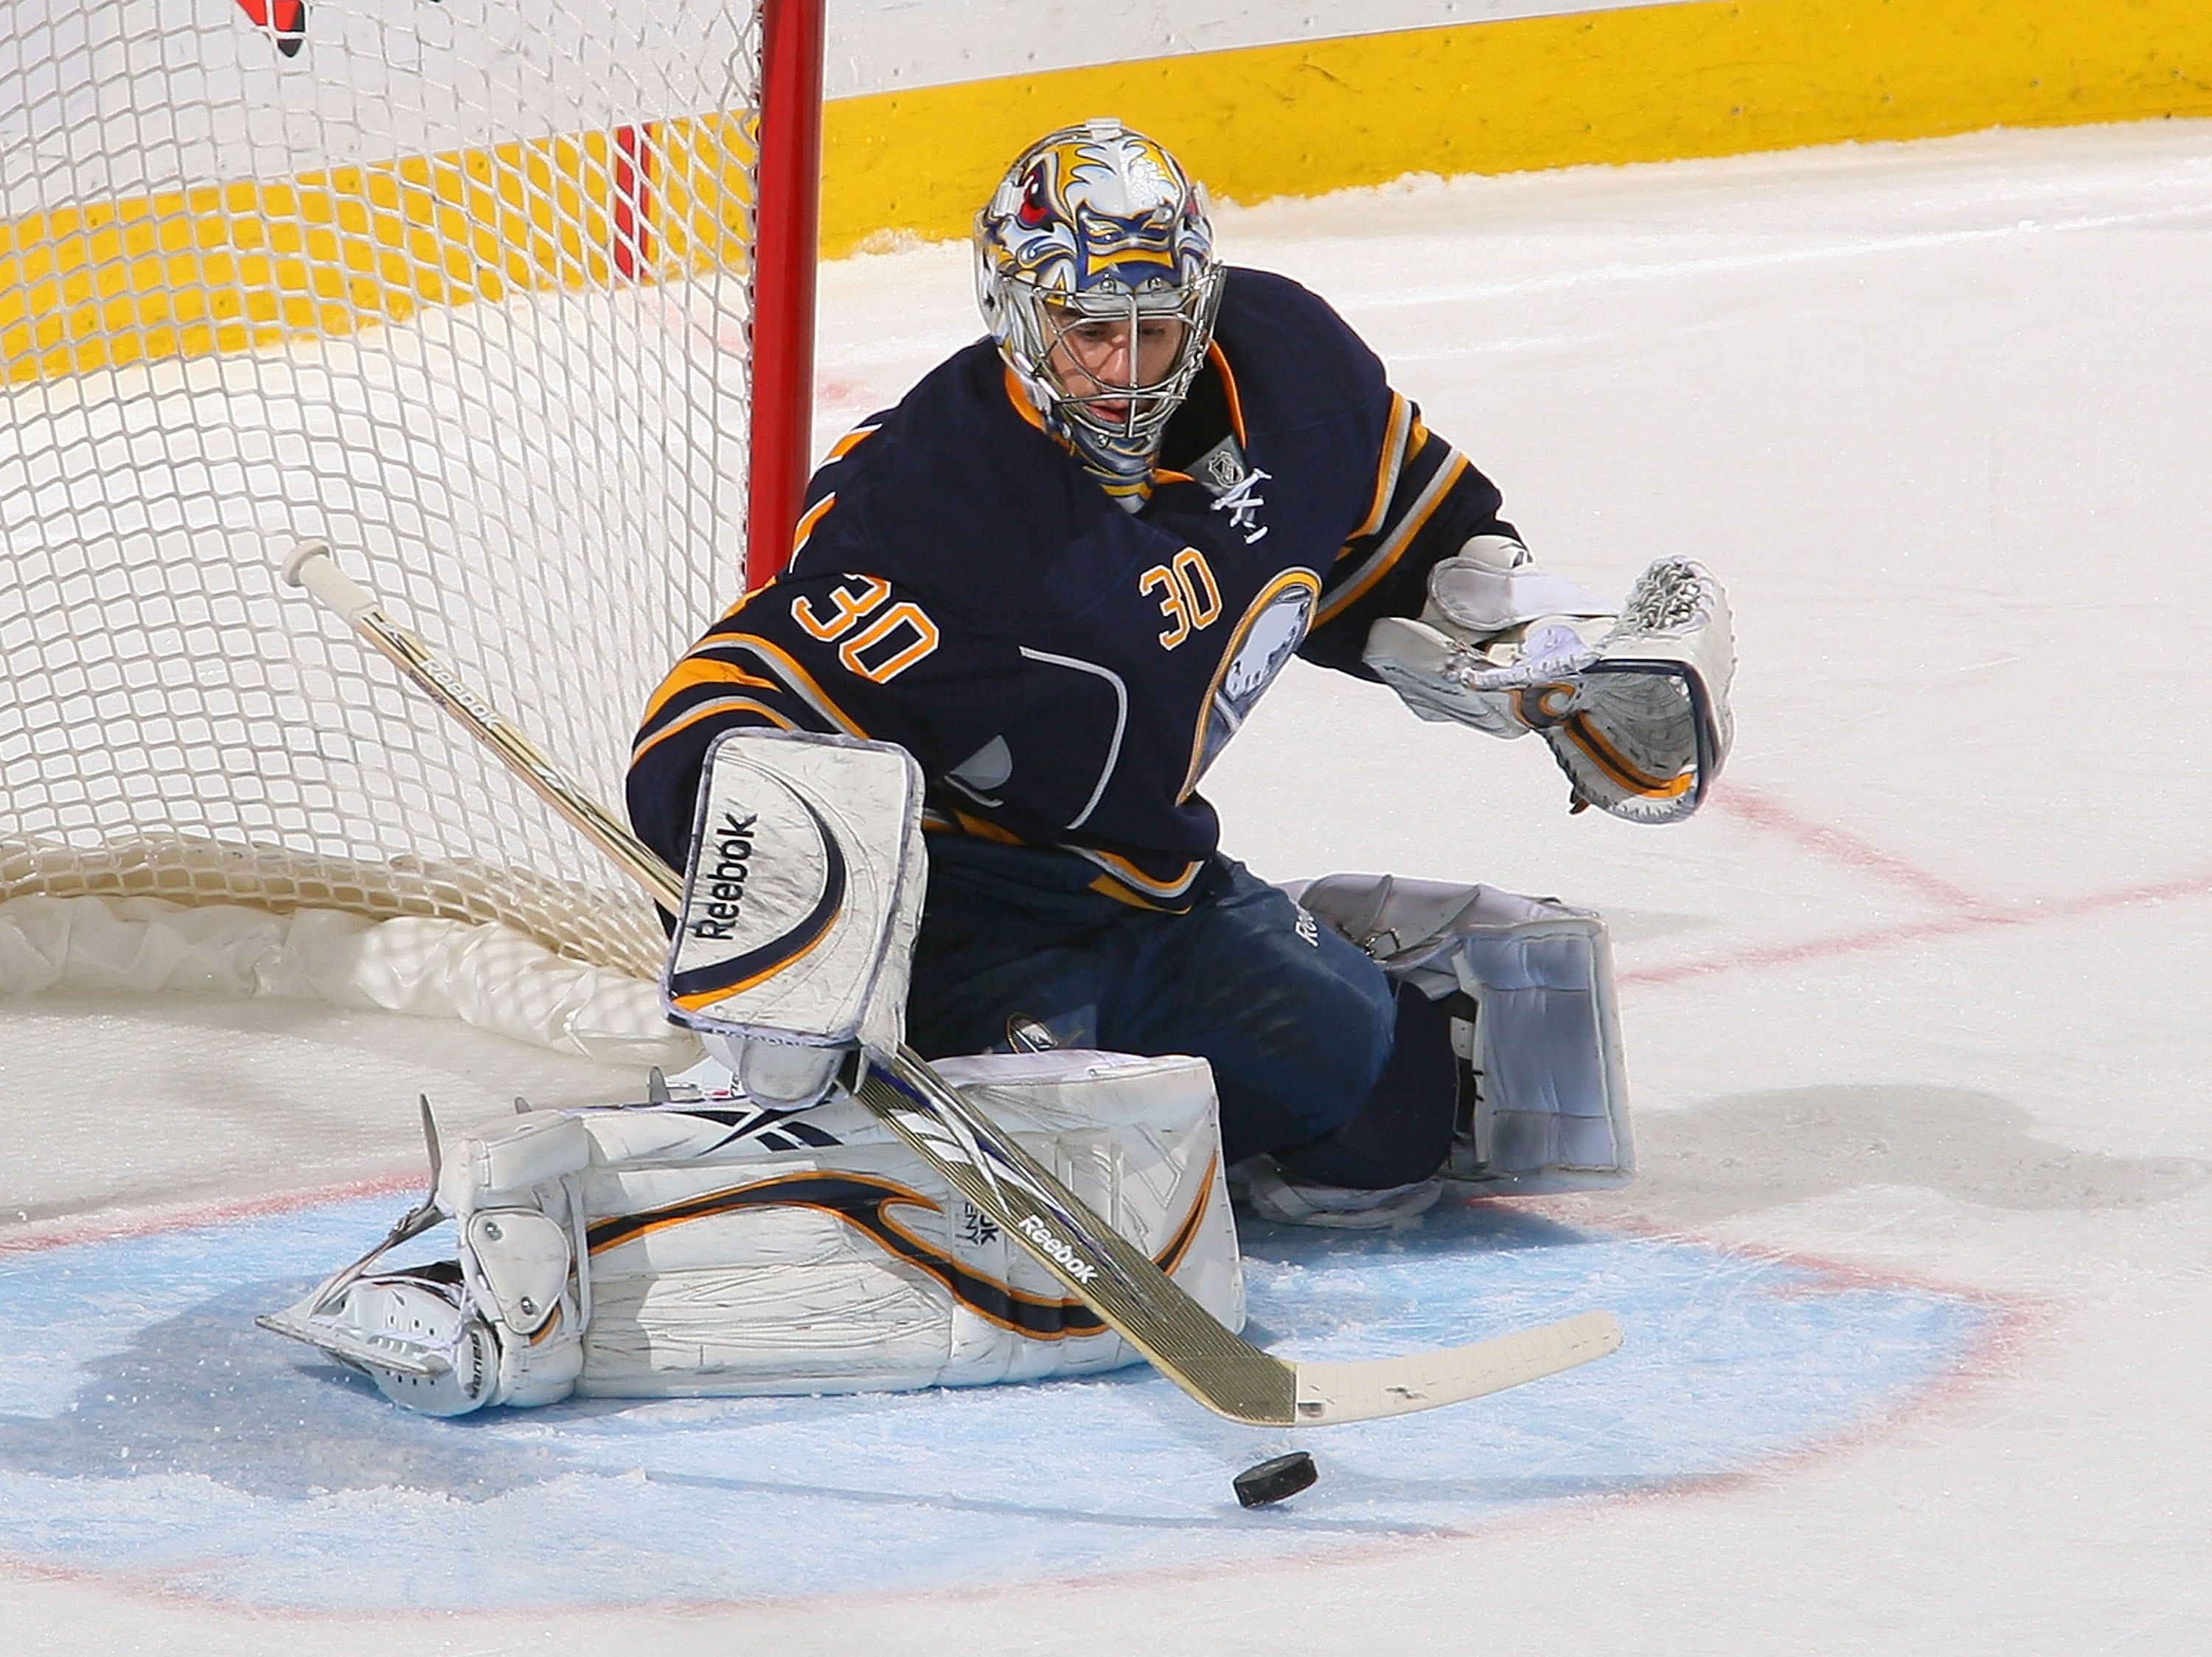 BUFFALO, NY - MARCH 20: Ryan Miller #30 of the Buffalo Sabres makes a save against the Nashville Predators at HSBC Arena on March 20, 2011 in Buffalo, New York.  (Photo by Rick Stewart/Getty Images)